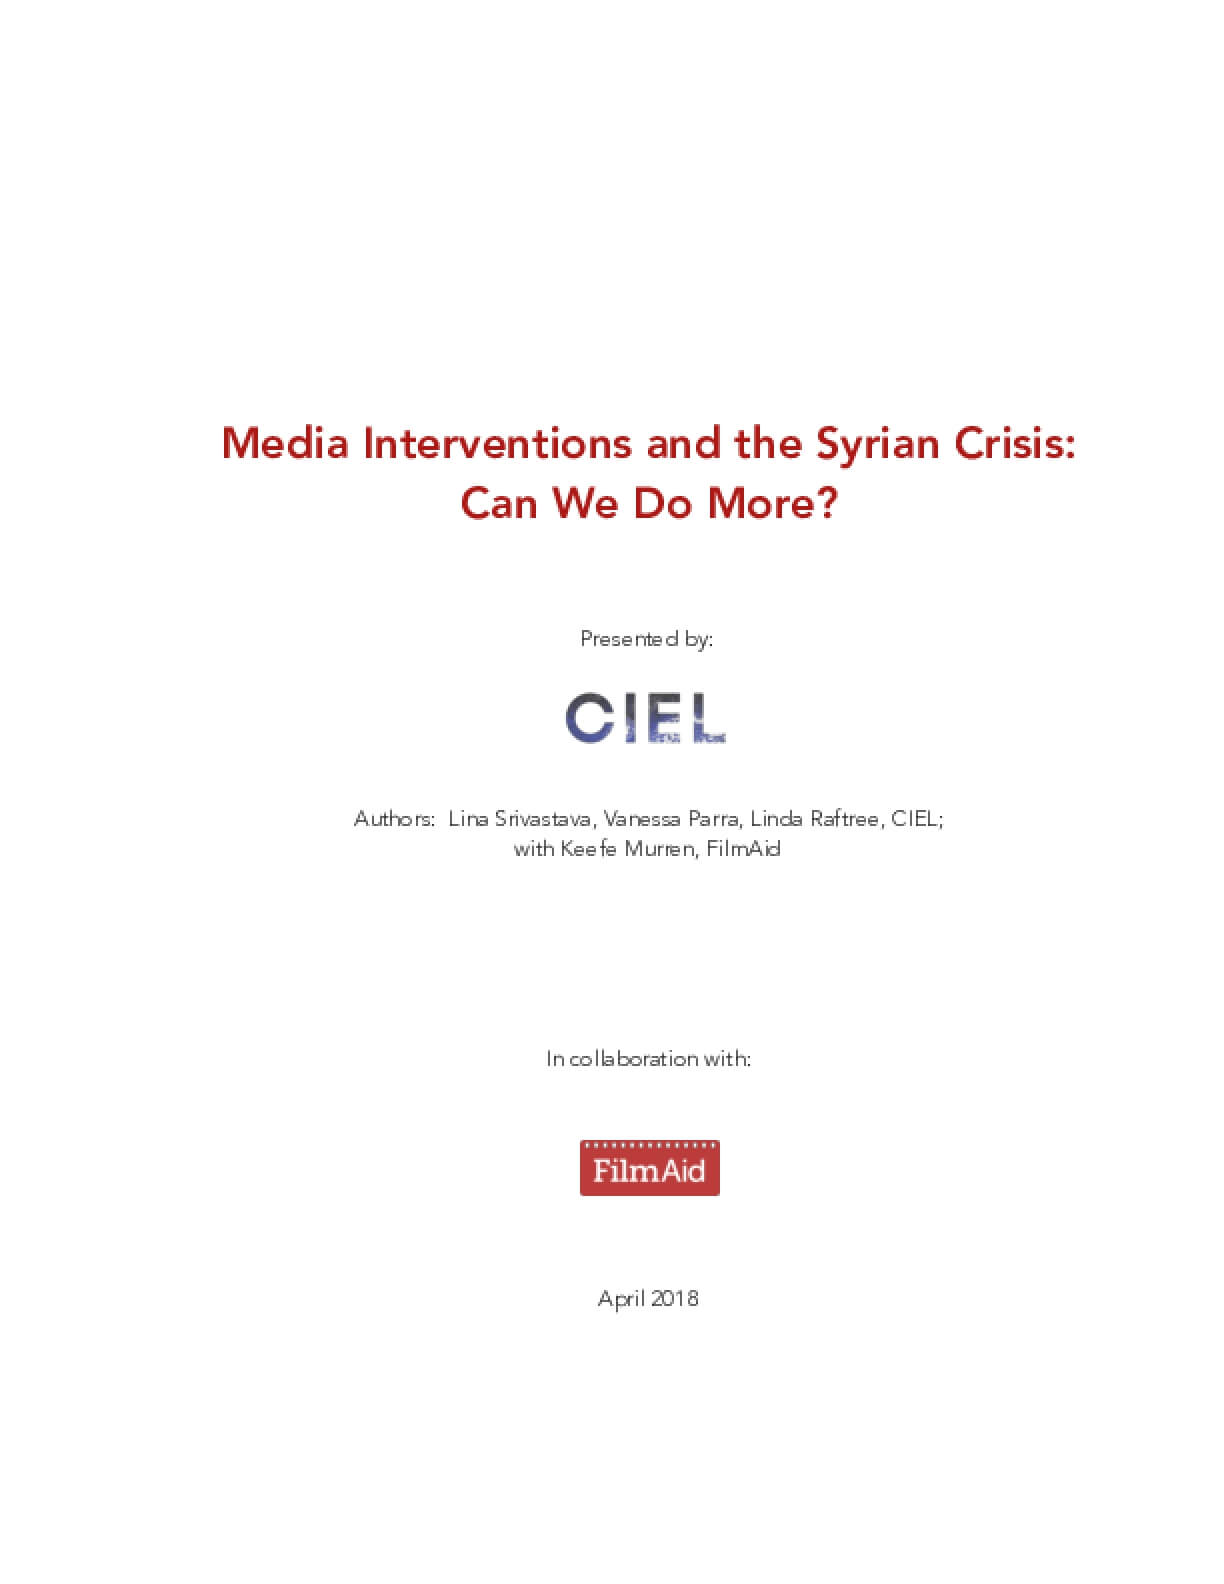 Media Interventions and the Syrian Crisis: Can We Do More?